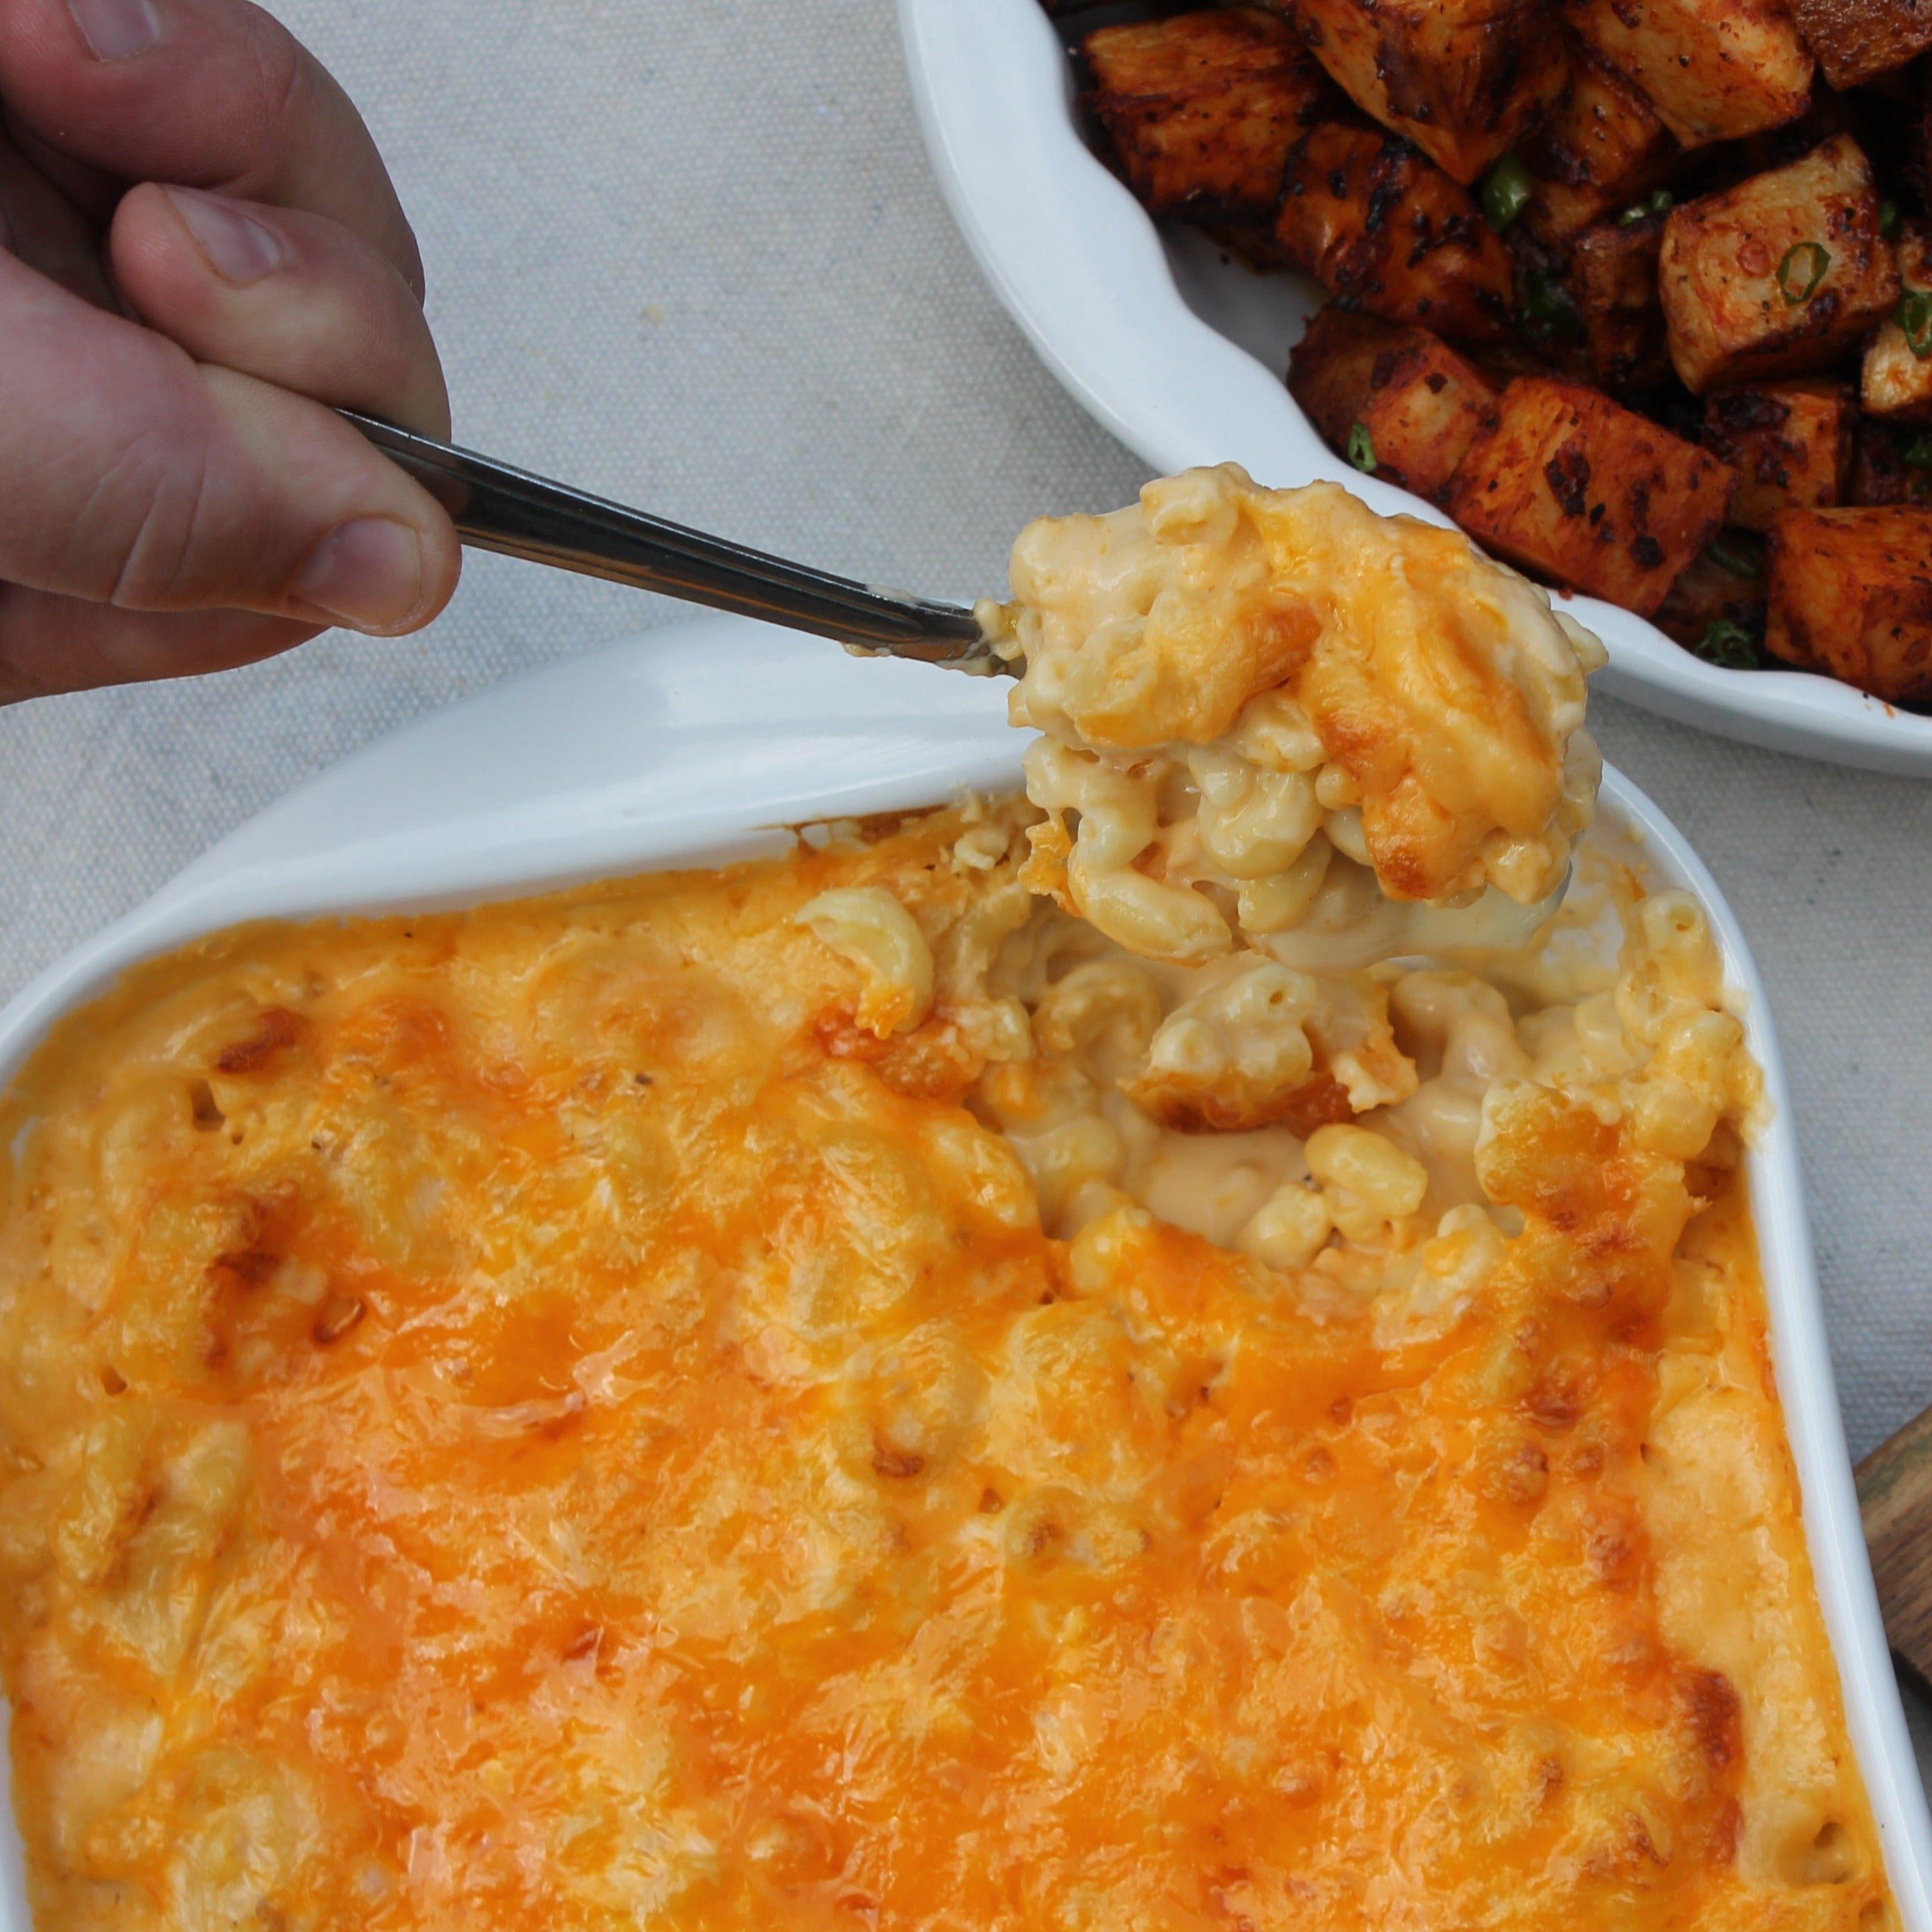 Mac and Cheese Pan (Bake at home)